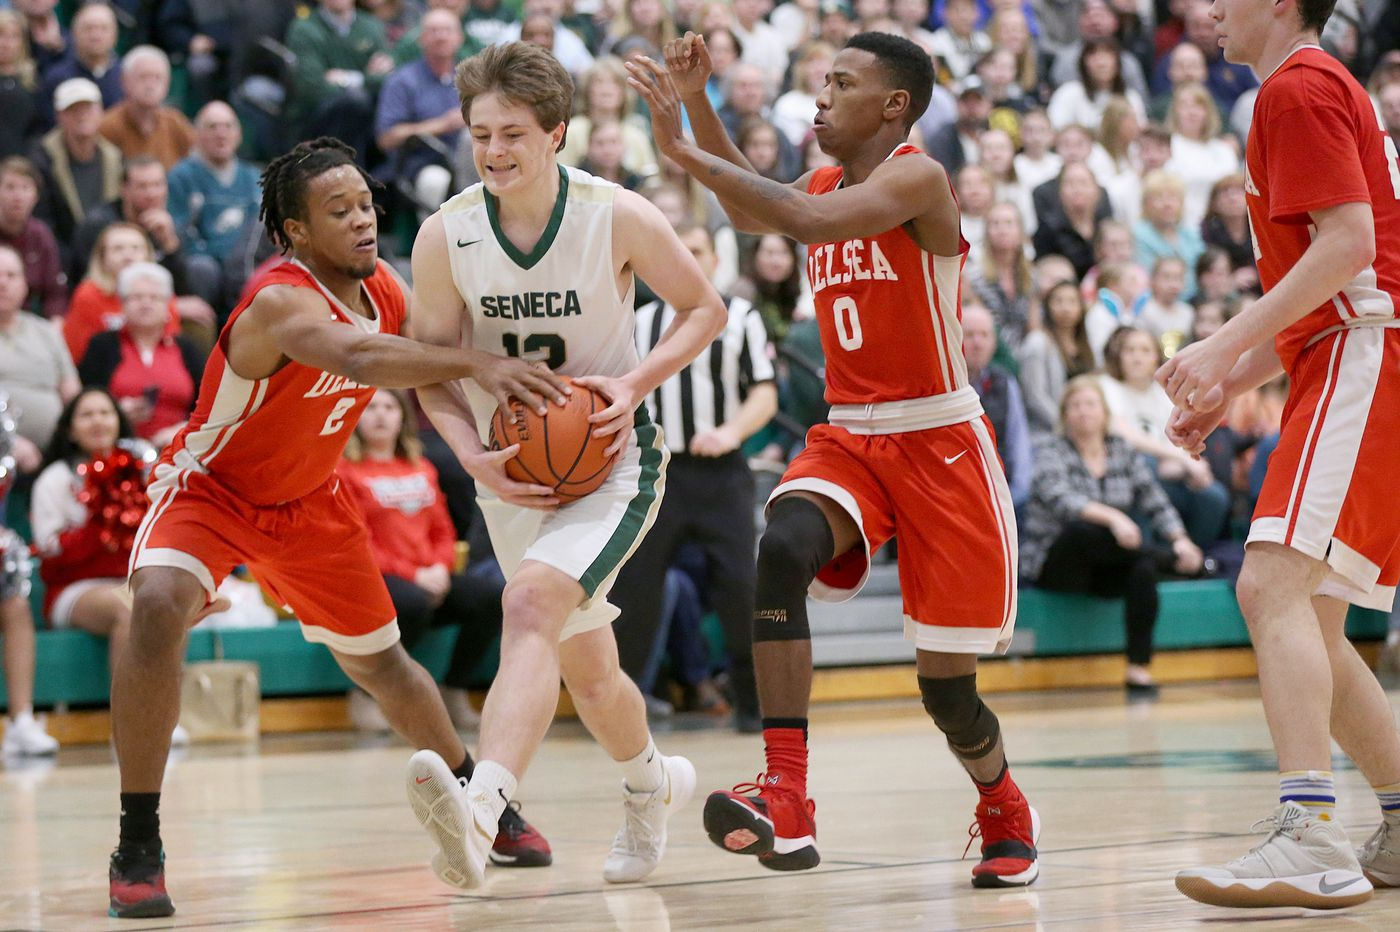 Thursday's South Jersey roundup: Seneca boys' basketball